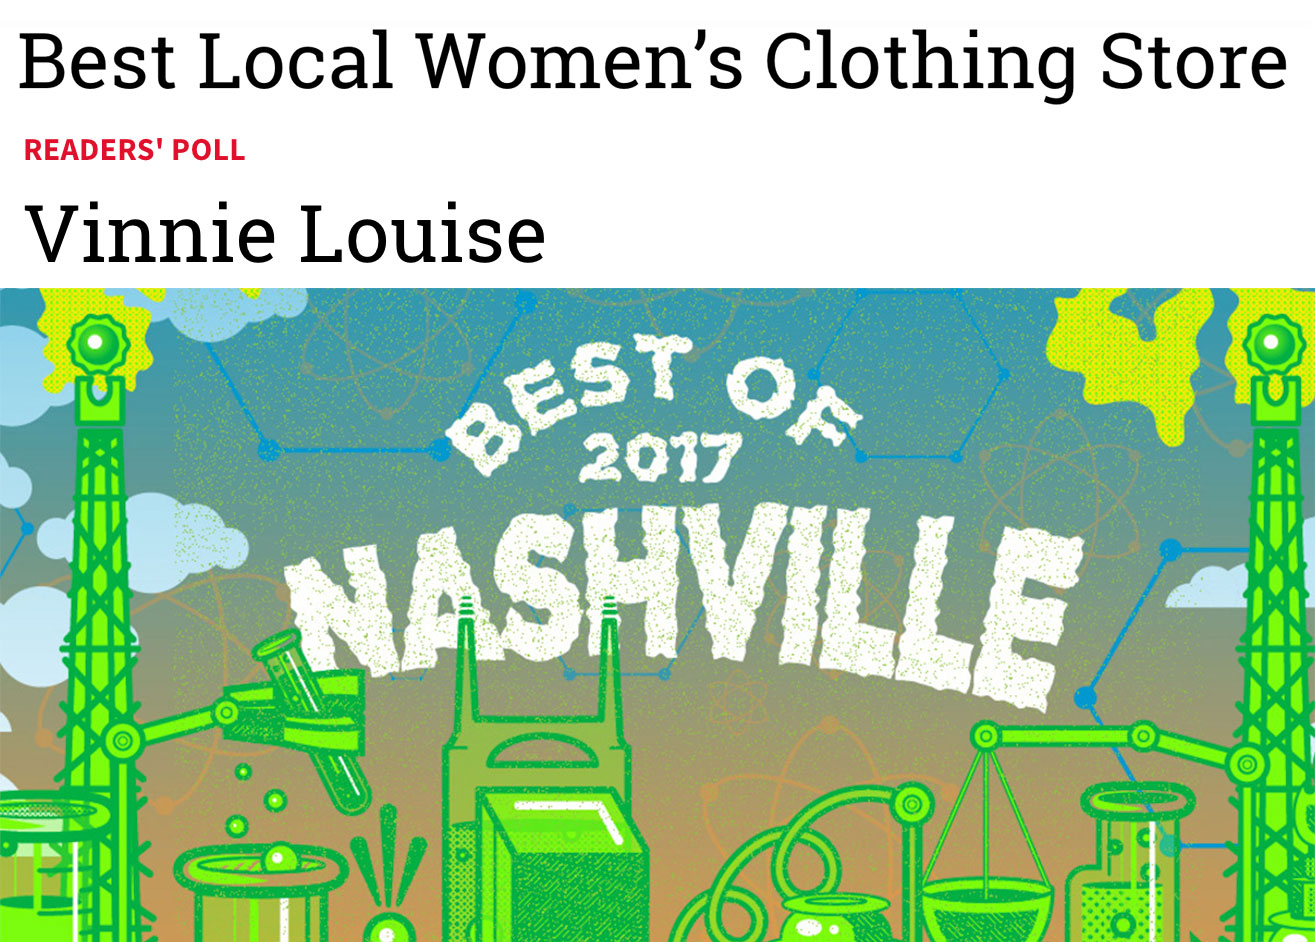 Best Local Women's Clothing Store || Nashville Scene Best Of Nashville 2017